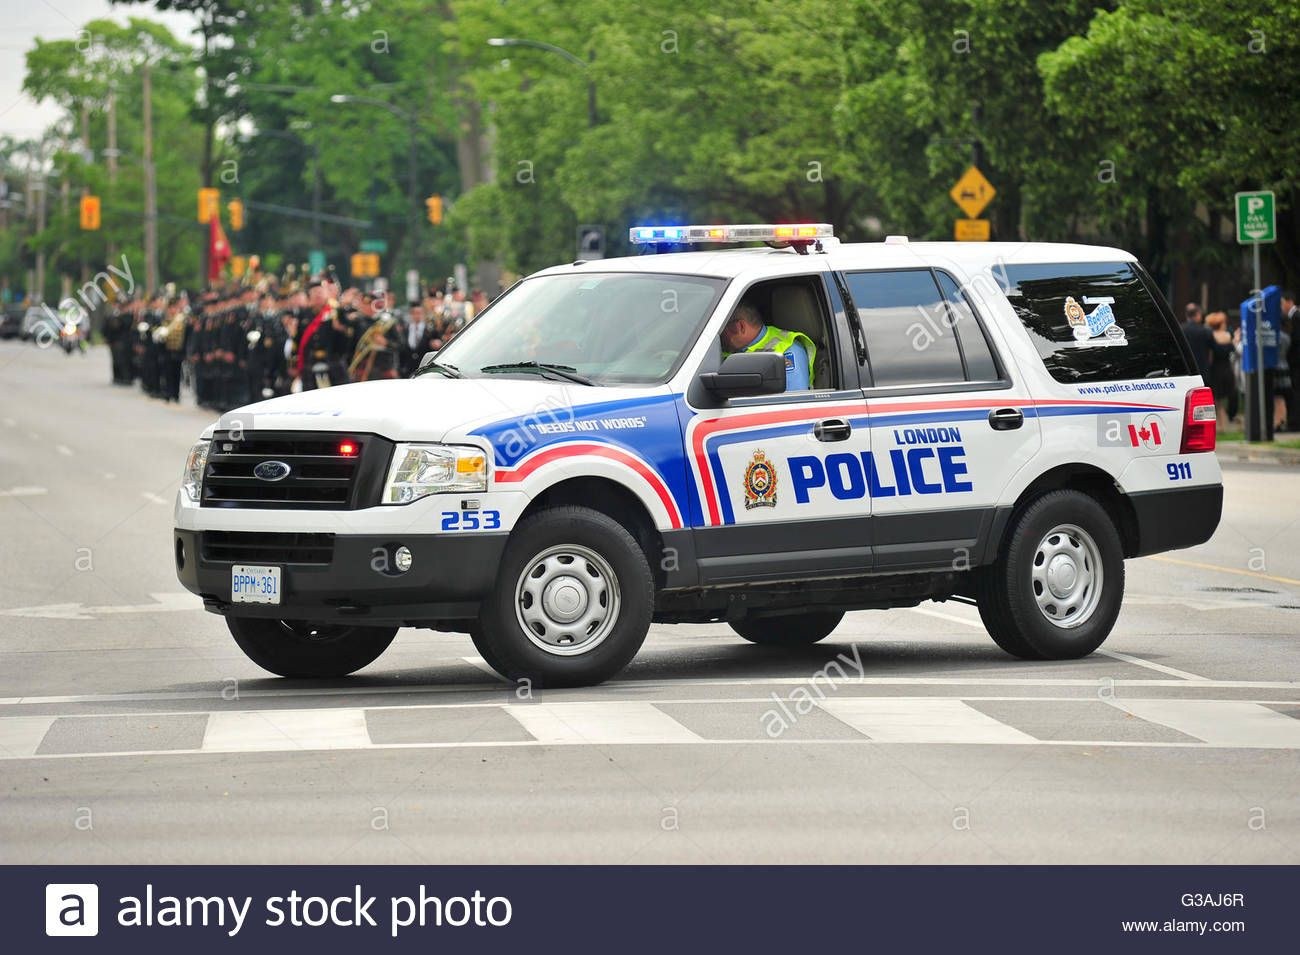 Pin By The Pictures On Goals In 2020 Police Cars Police Car